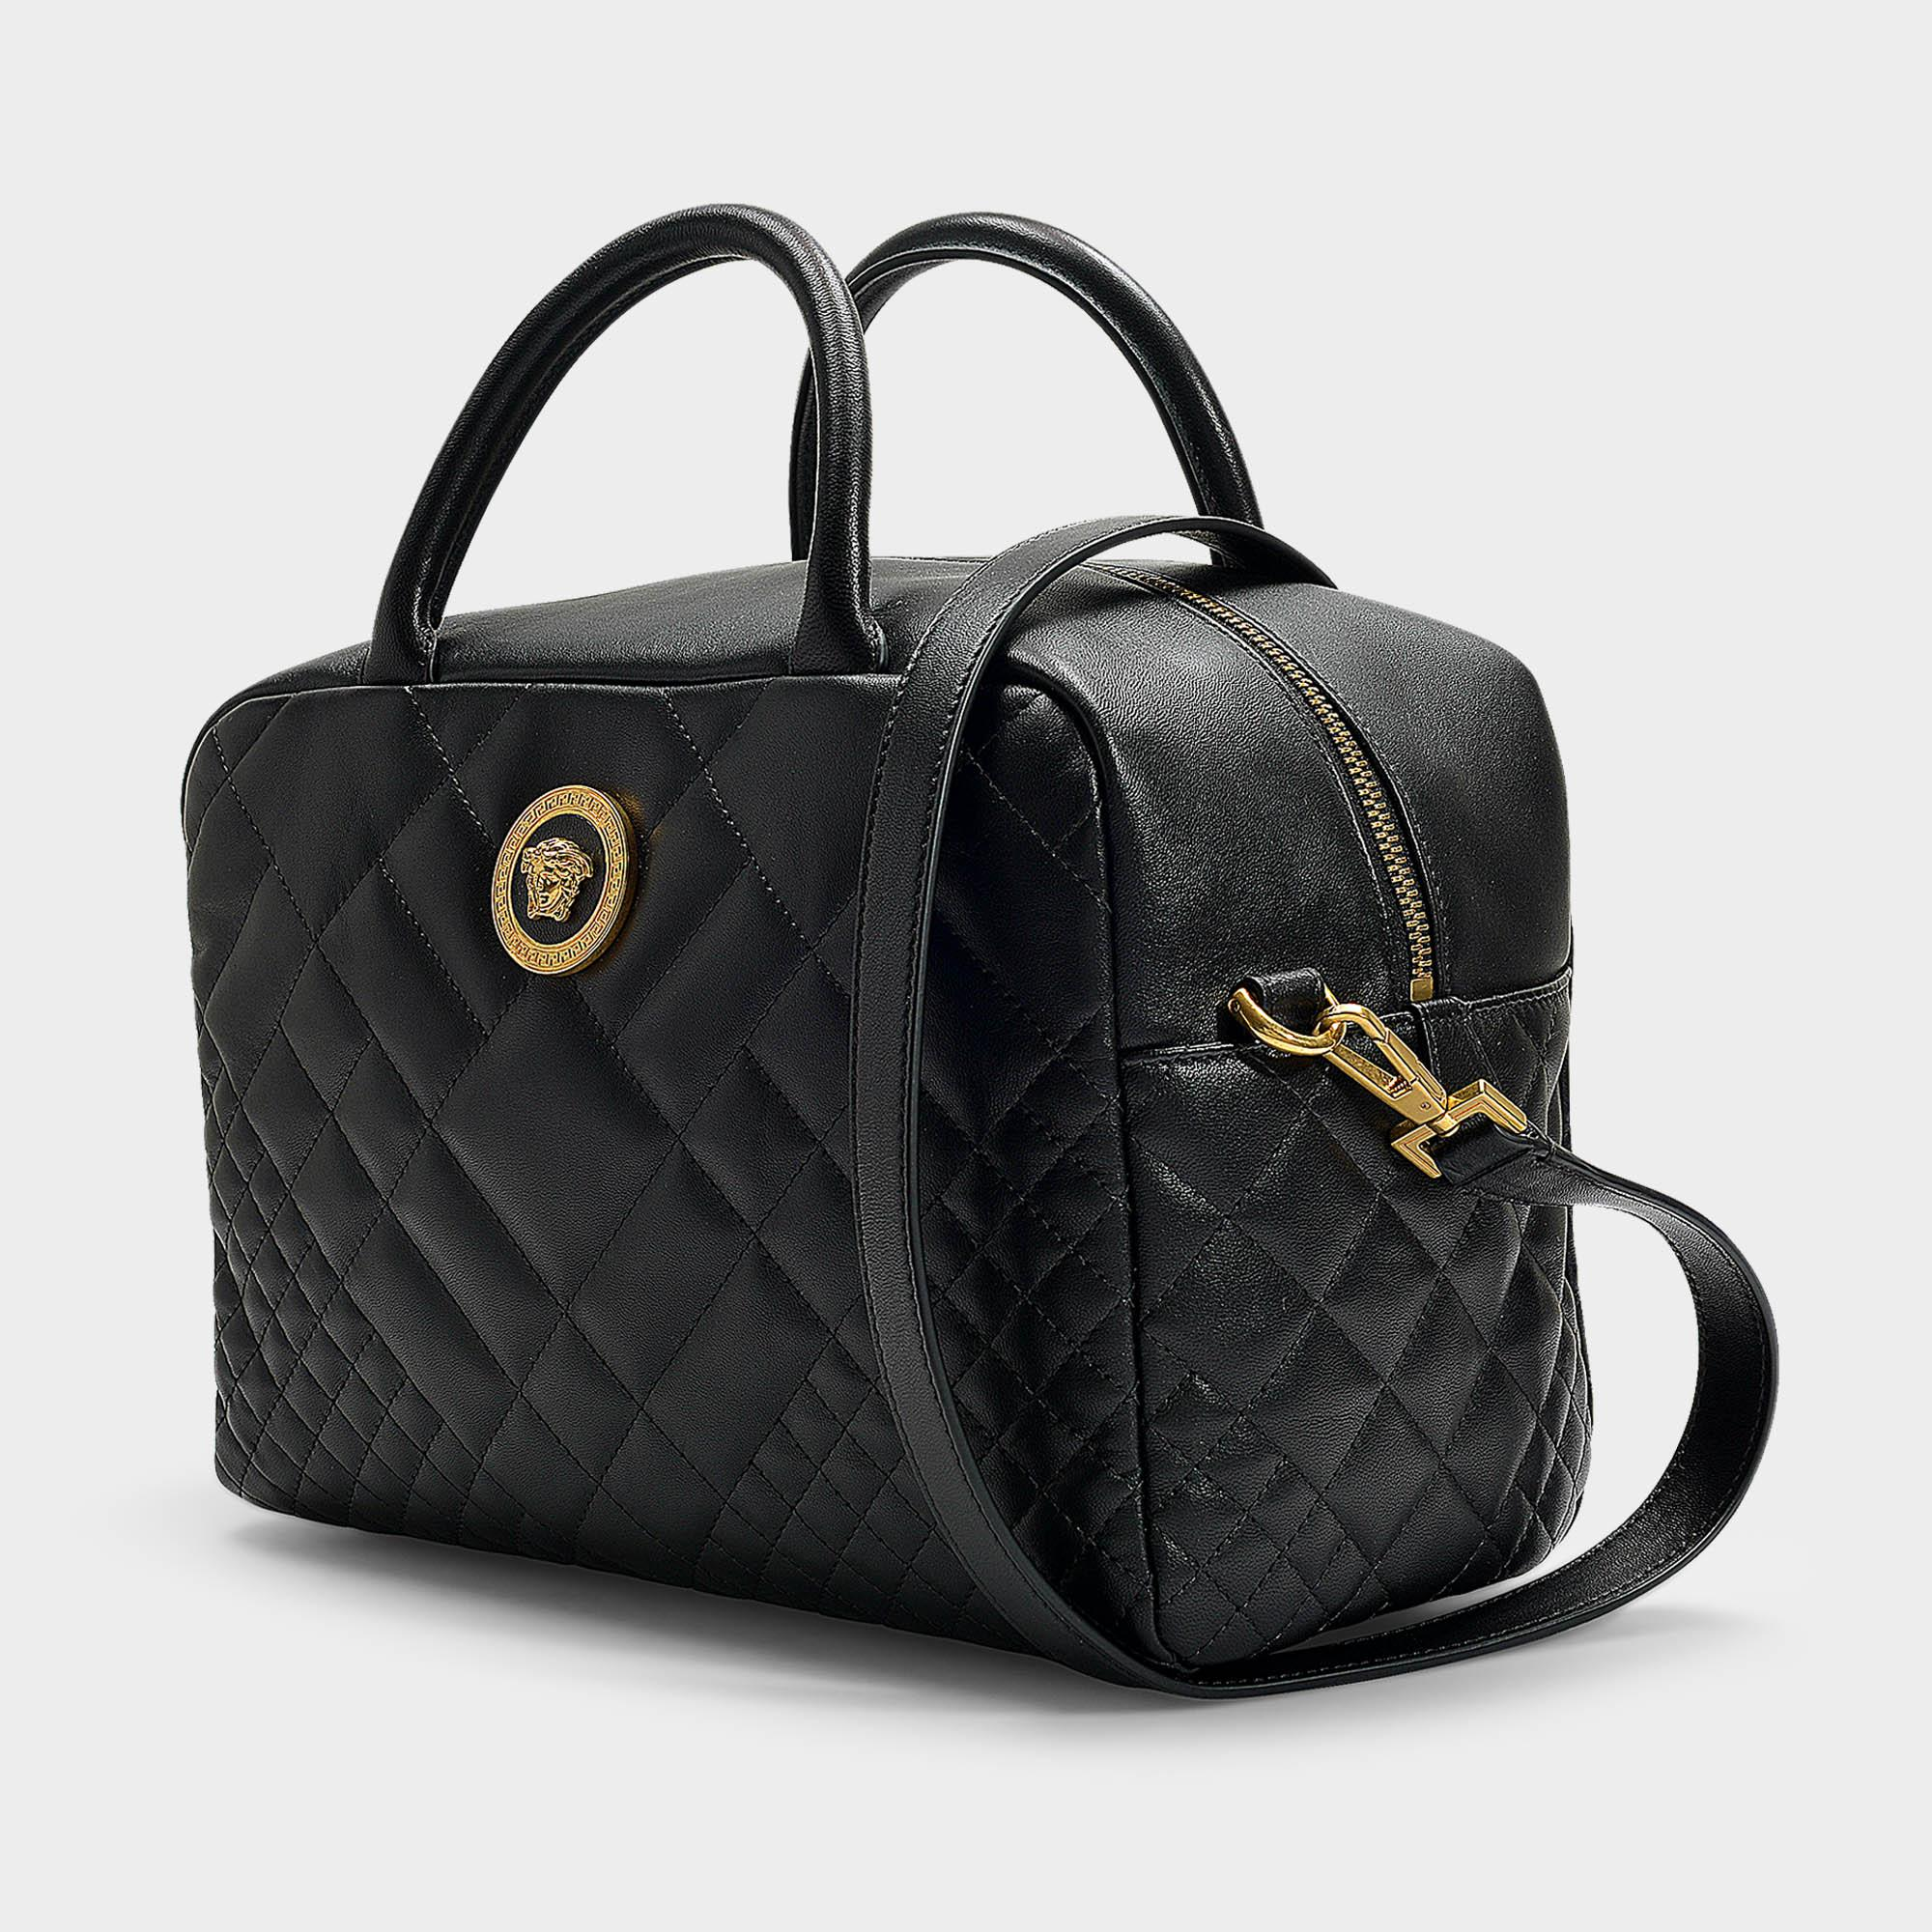 49b520bdee49 Versace Bowling Bag In Black Quilted Lamb Leather in Black - Lyst